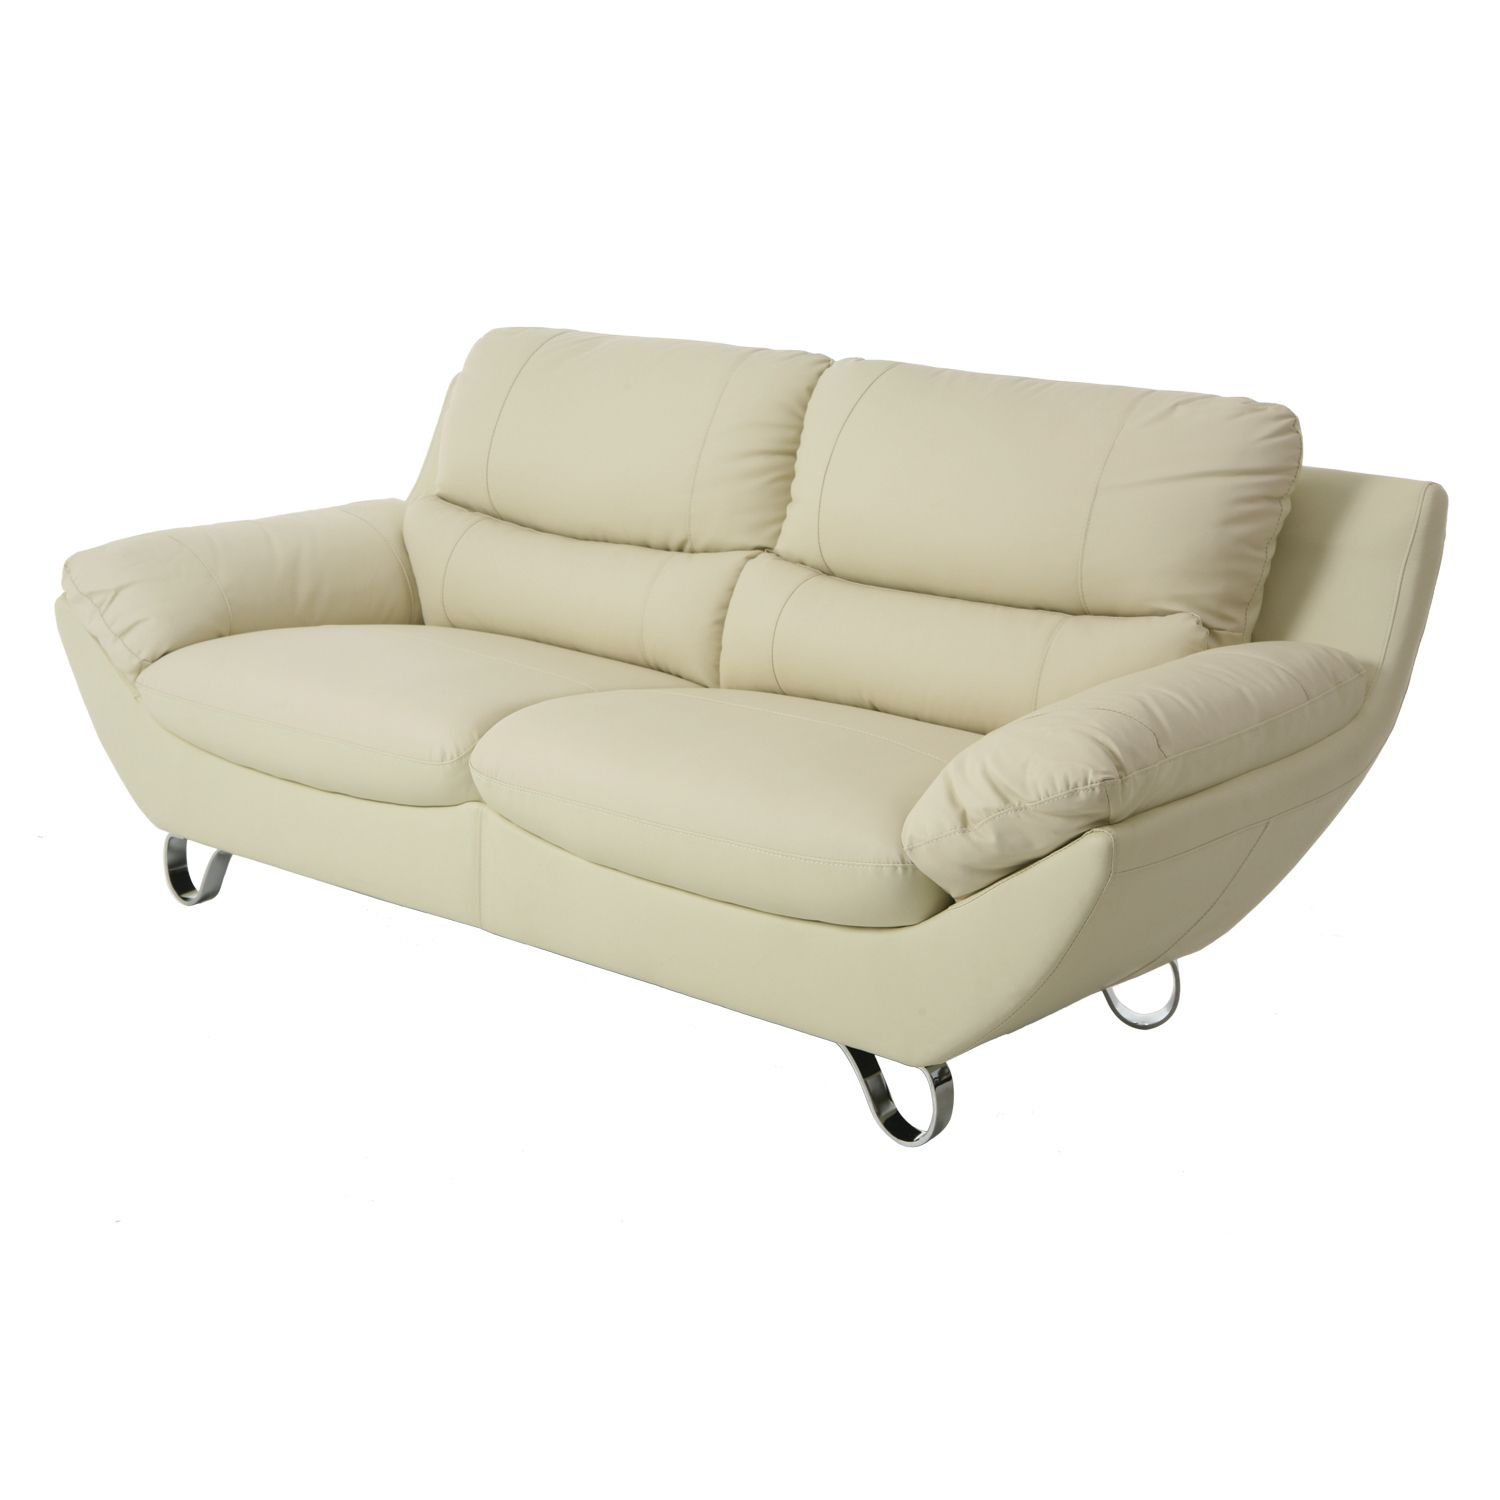 Sofa For Less The Mableton Sofa features